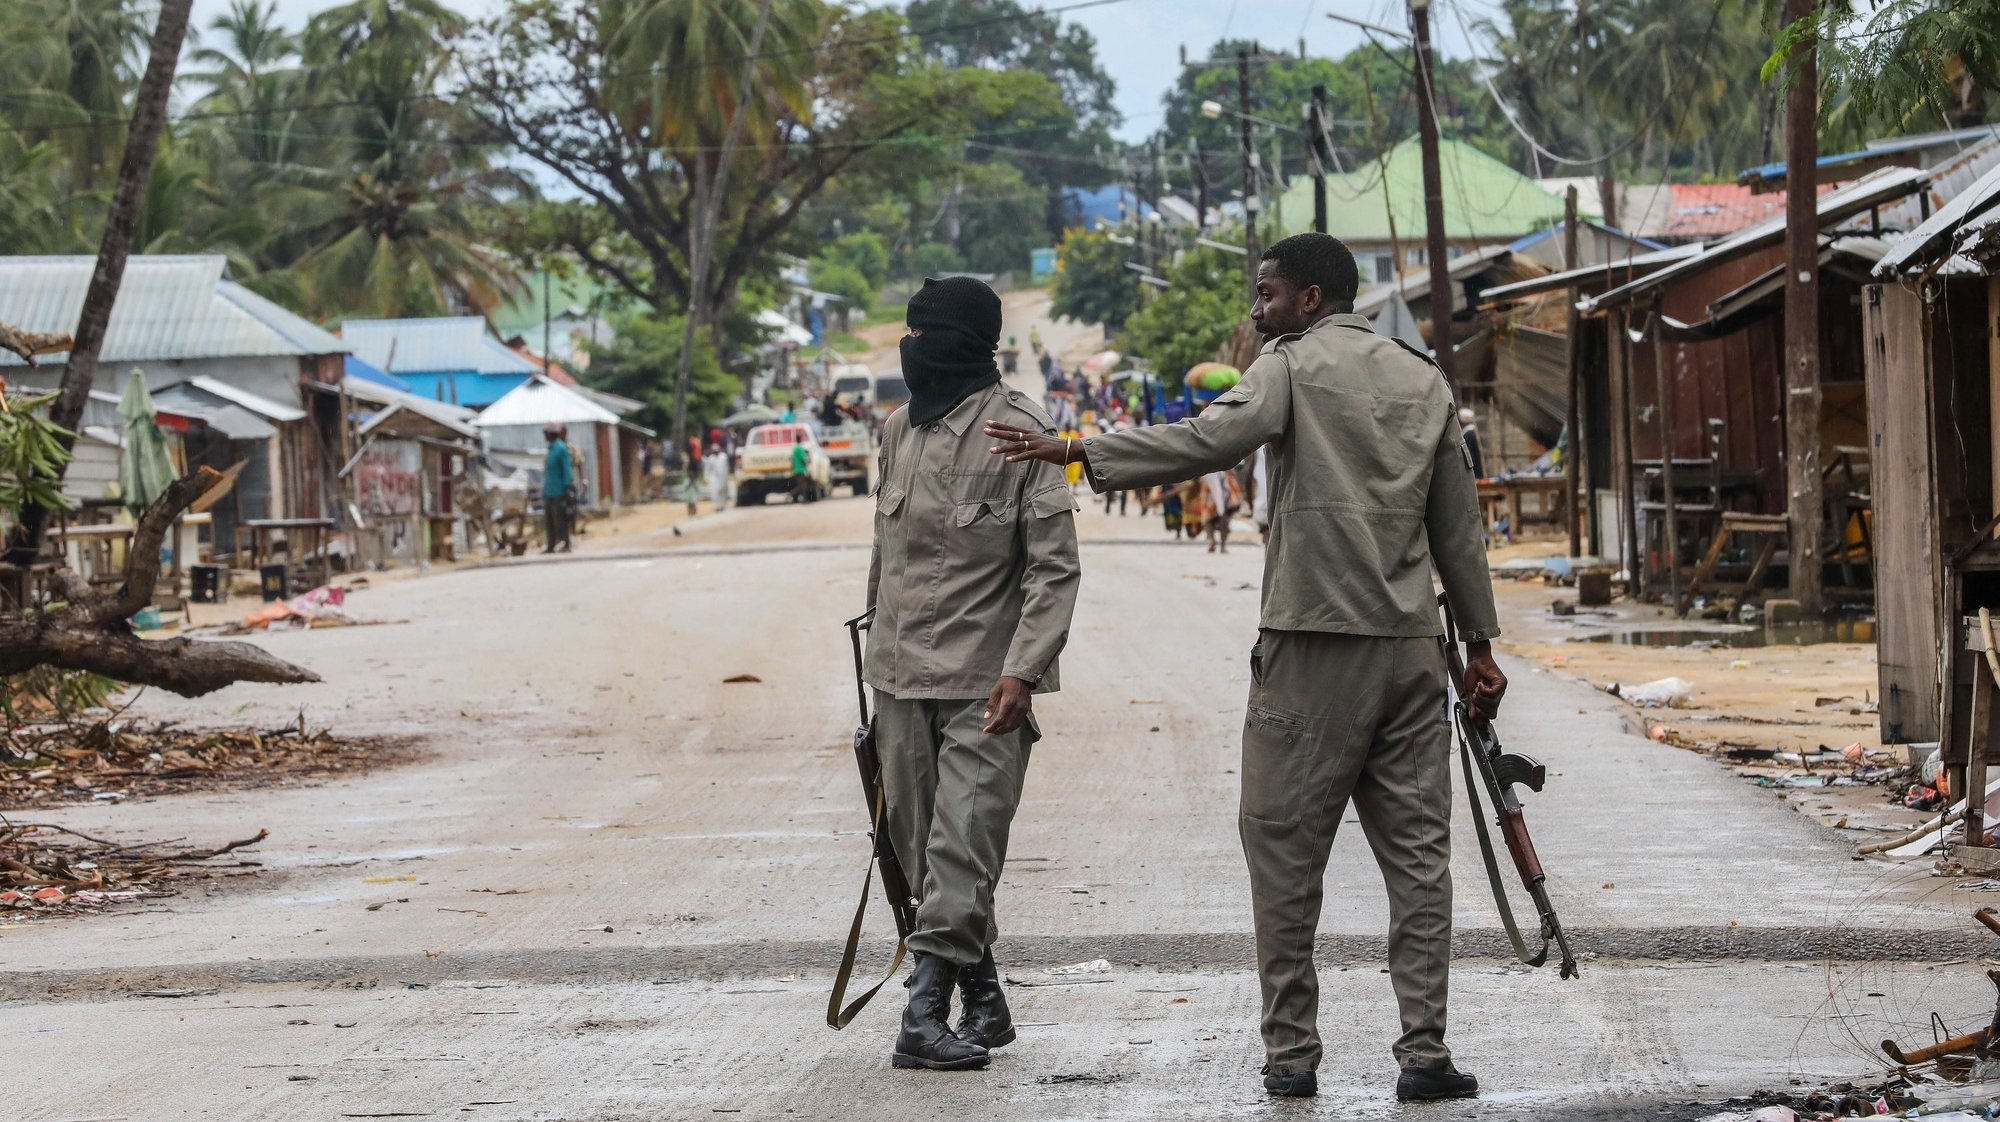 epa09131130 Mozambique army soldier patrols the streets of Palma, Cabo Delgado, Mozambique, 12 April 2021. The violence unleashed more than three years ago in Cabo Delgado province escalated again about two weeks ago, when armed groups first attacked the town of Palma.  EPA/JOAO RELVAS